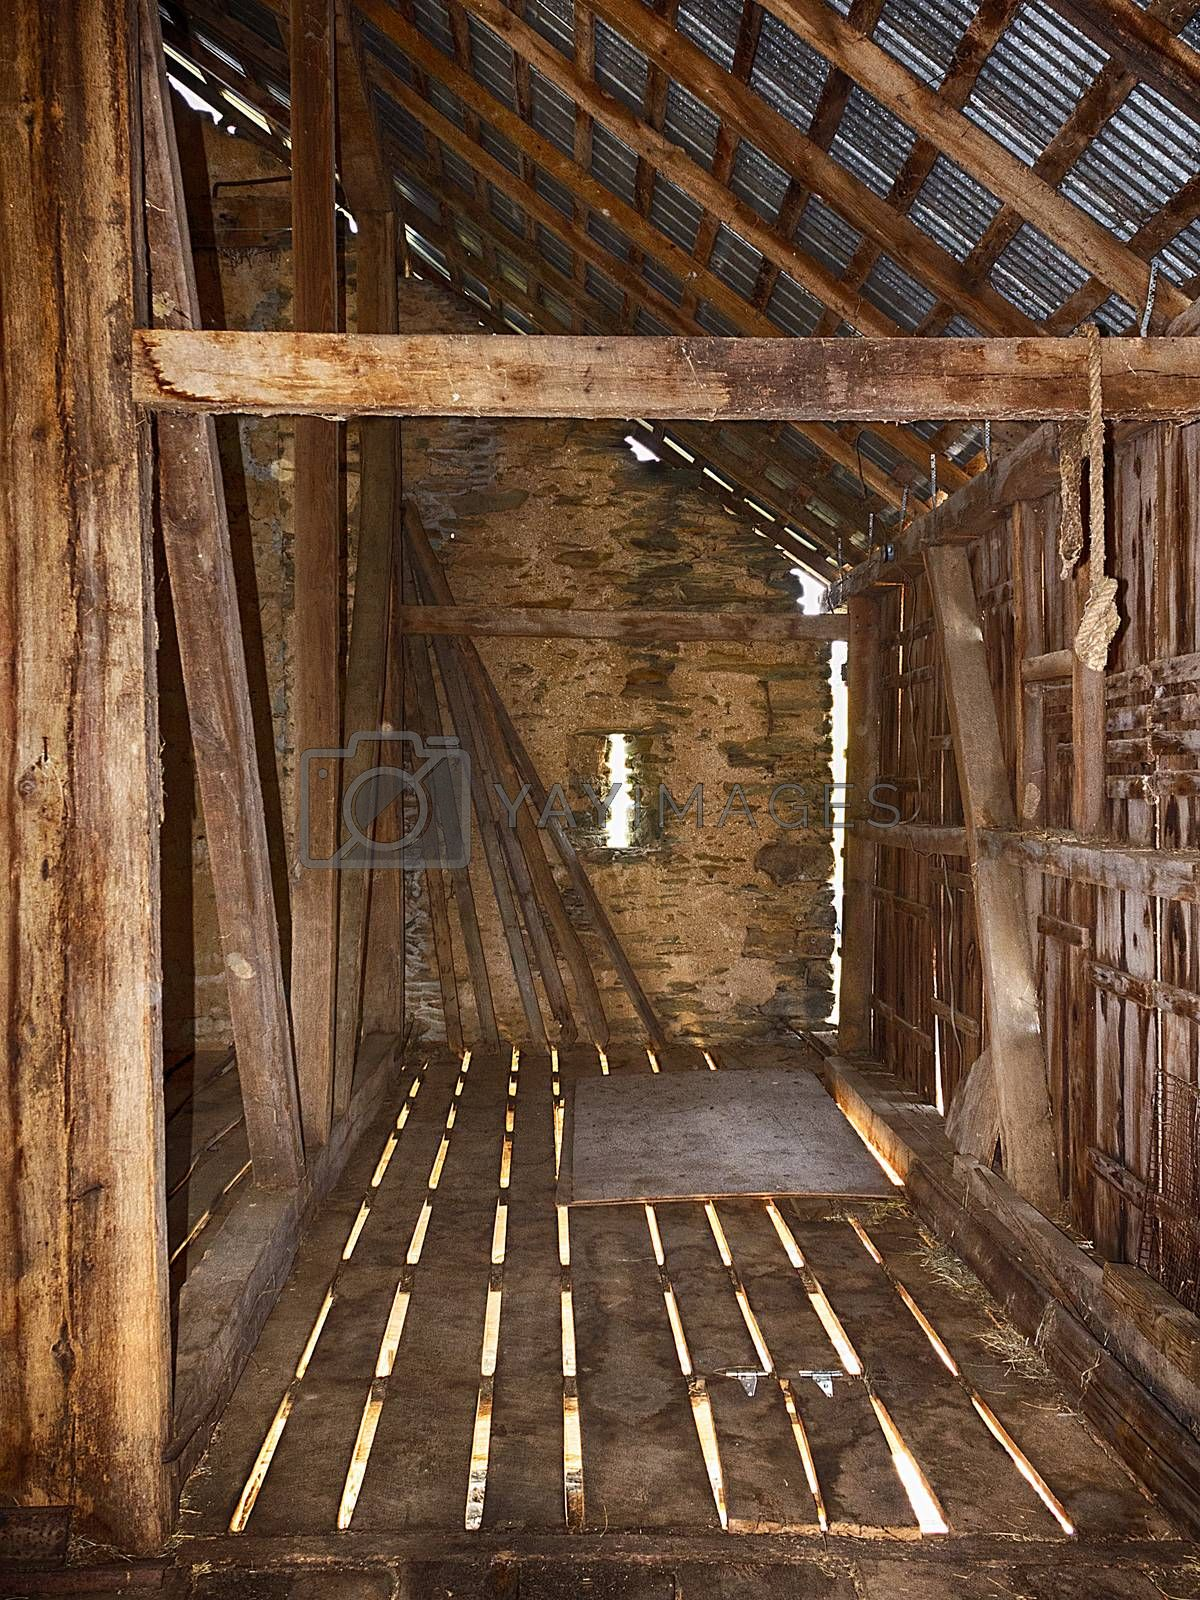 Interior view of old bank barn with stone walls